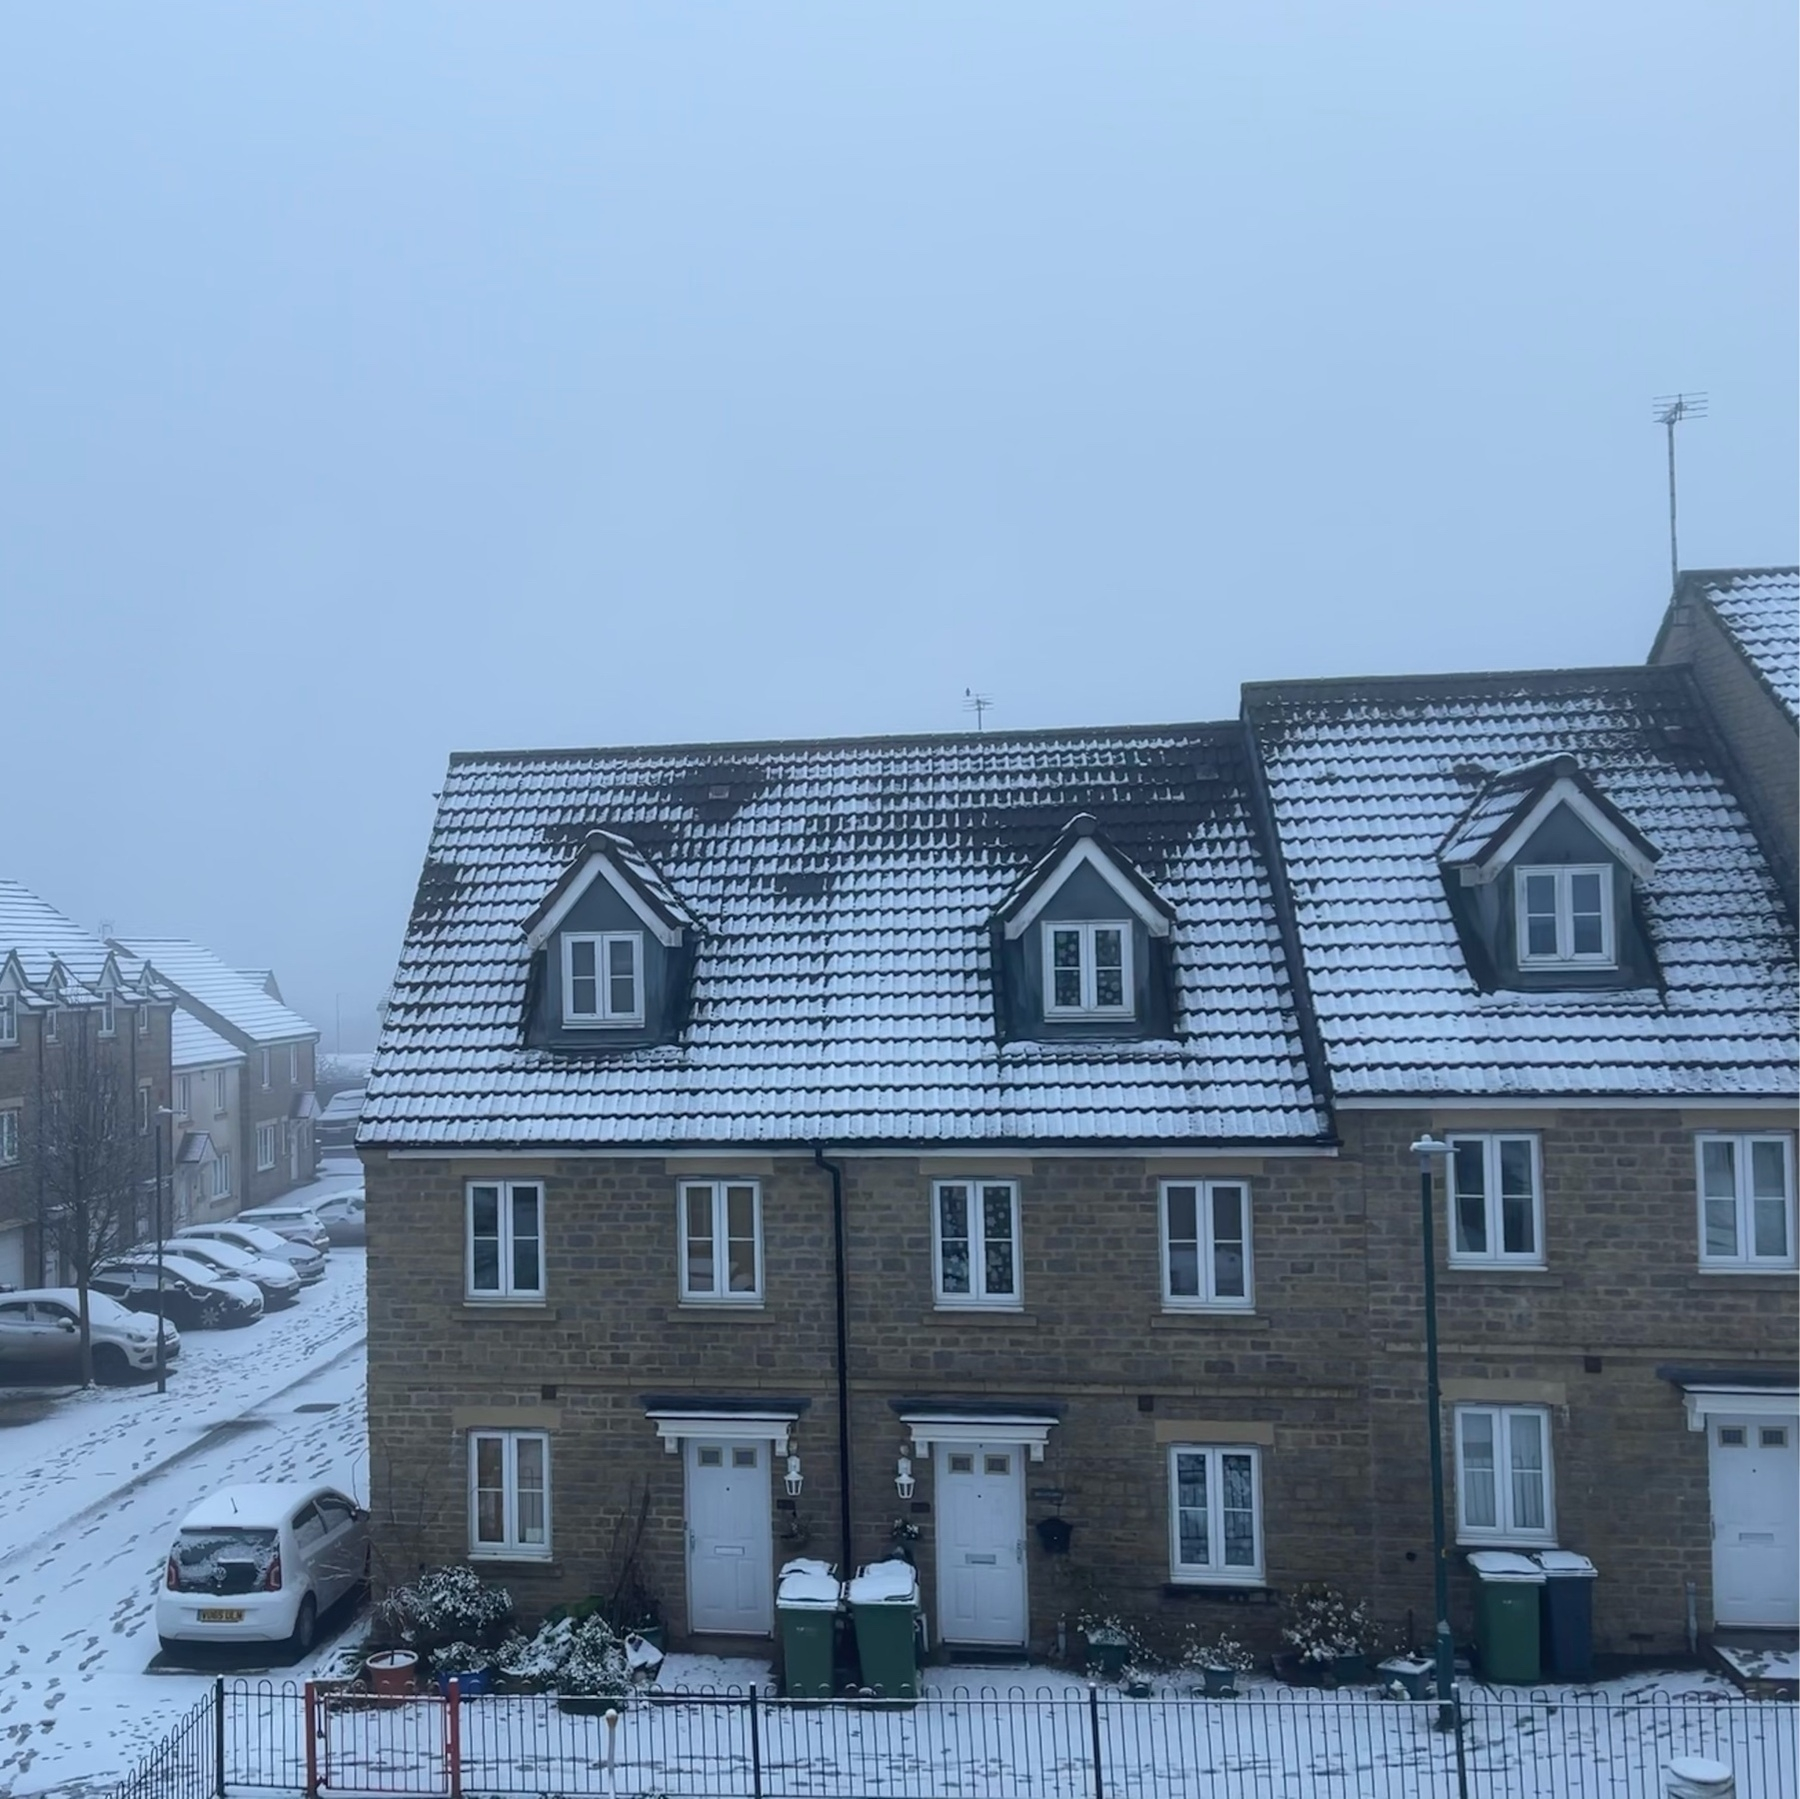 snow on the rooves of houses, cars, and the ground.